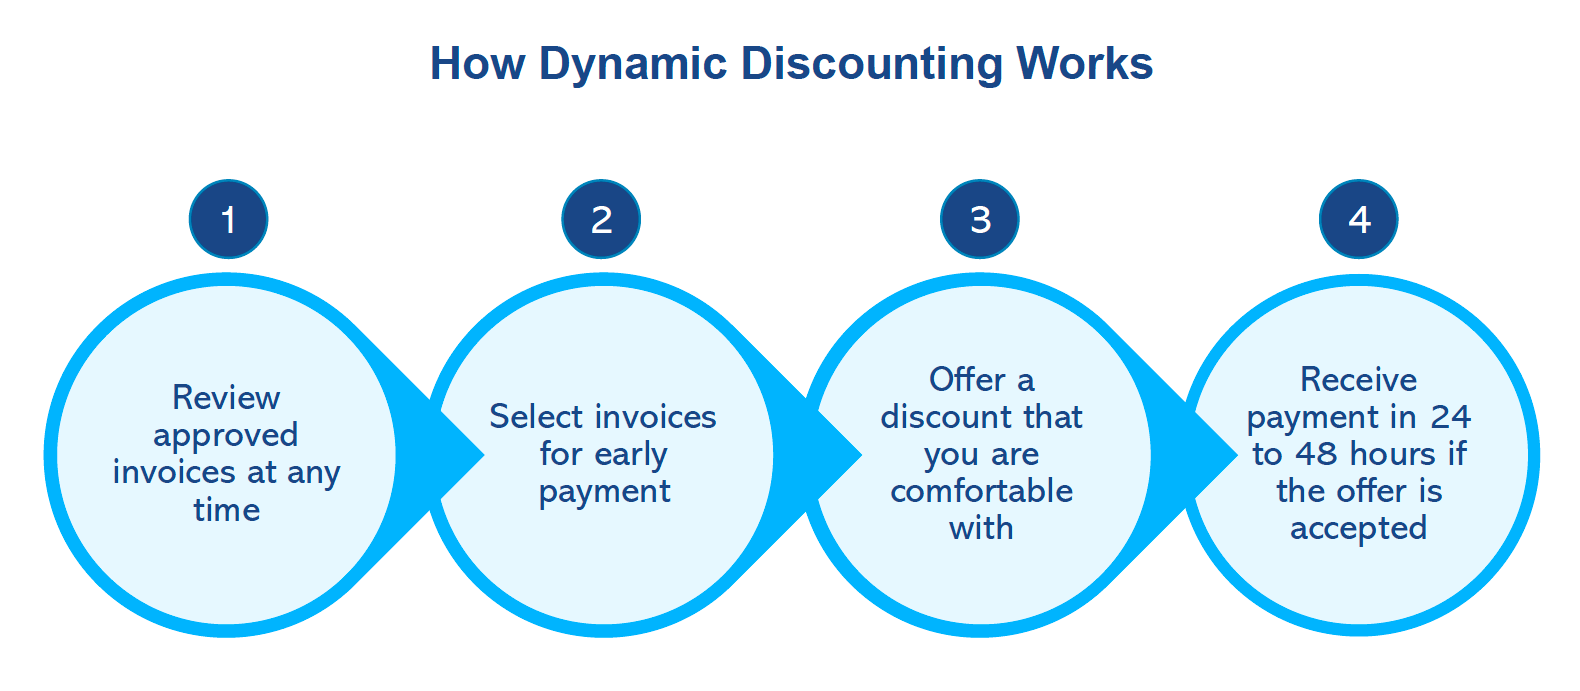 How Dynamic Discounting Works